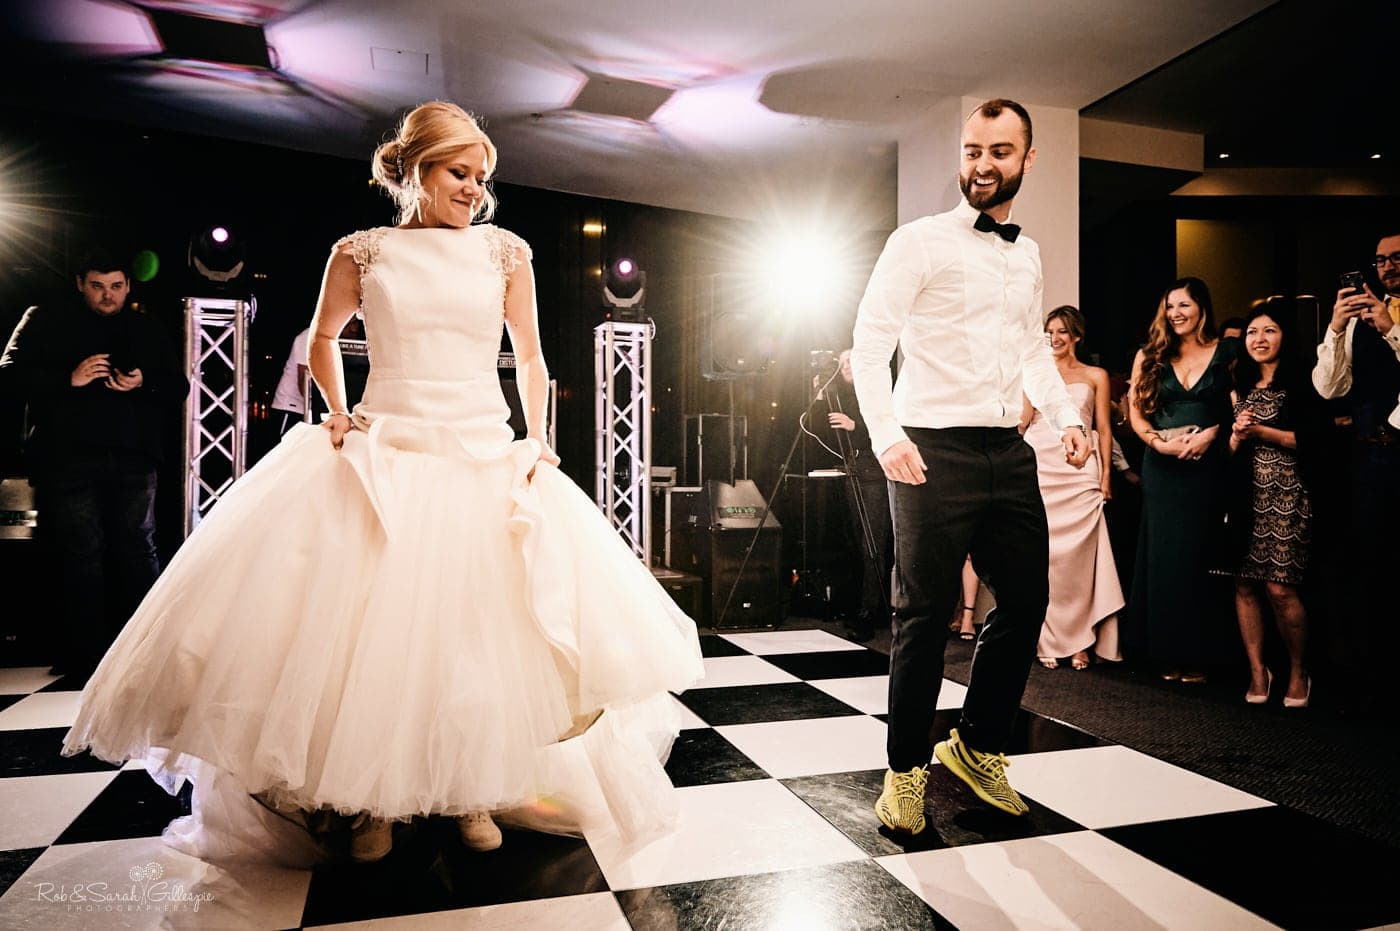 Bride and groom choreographed first dance at wedding